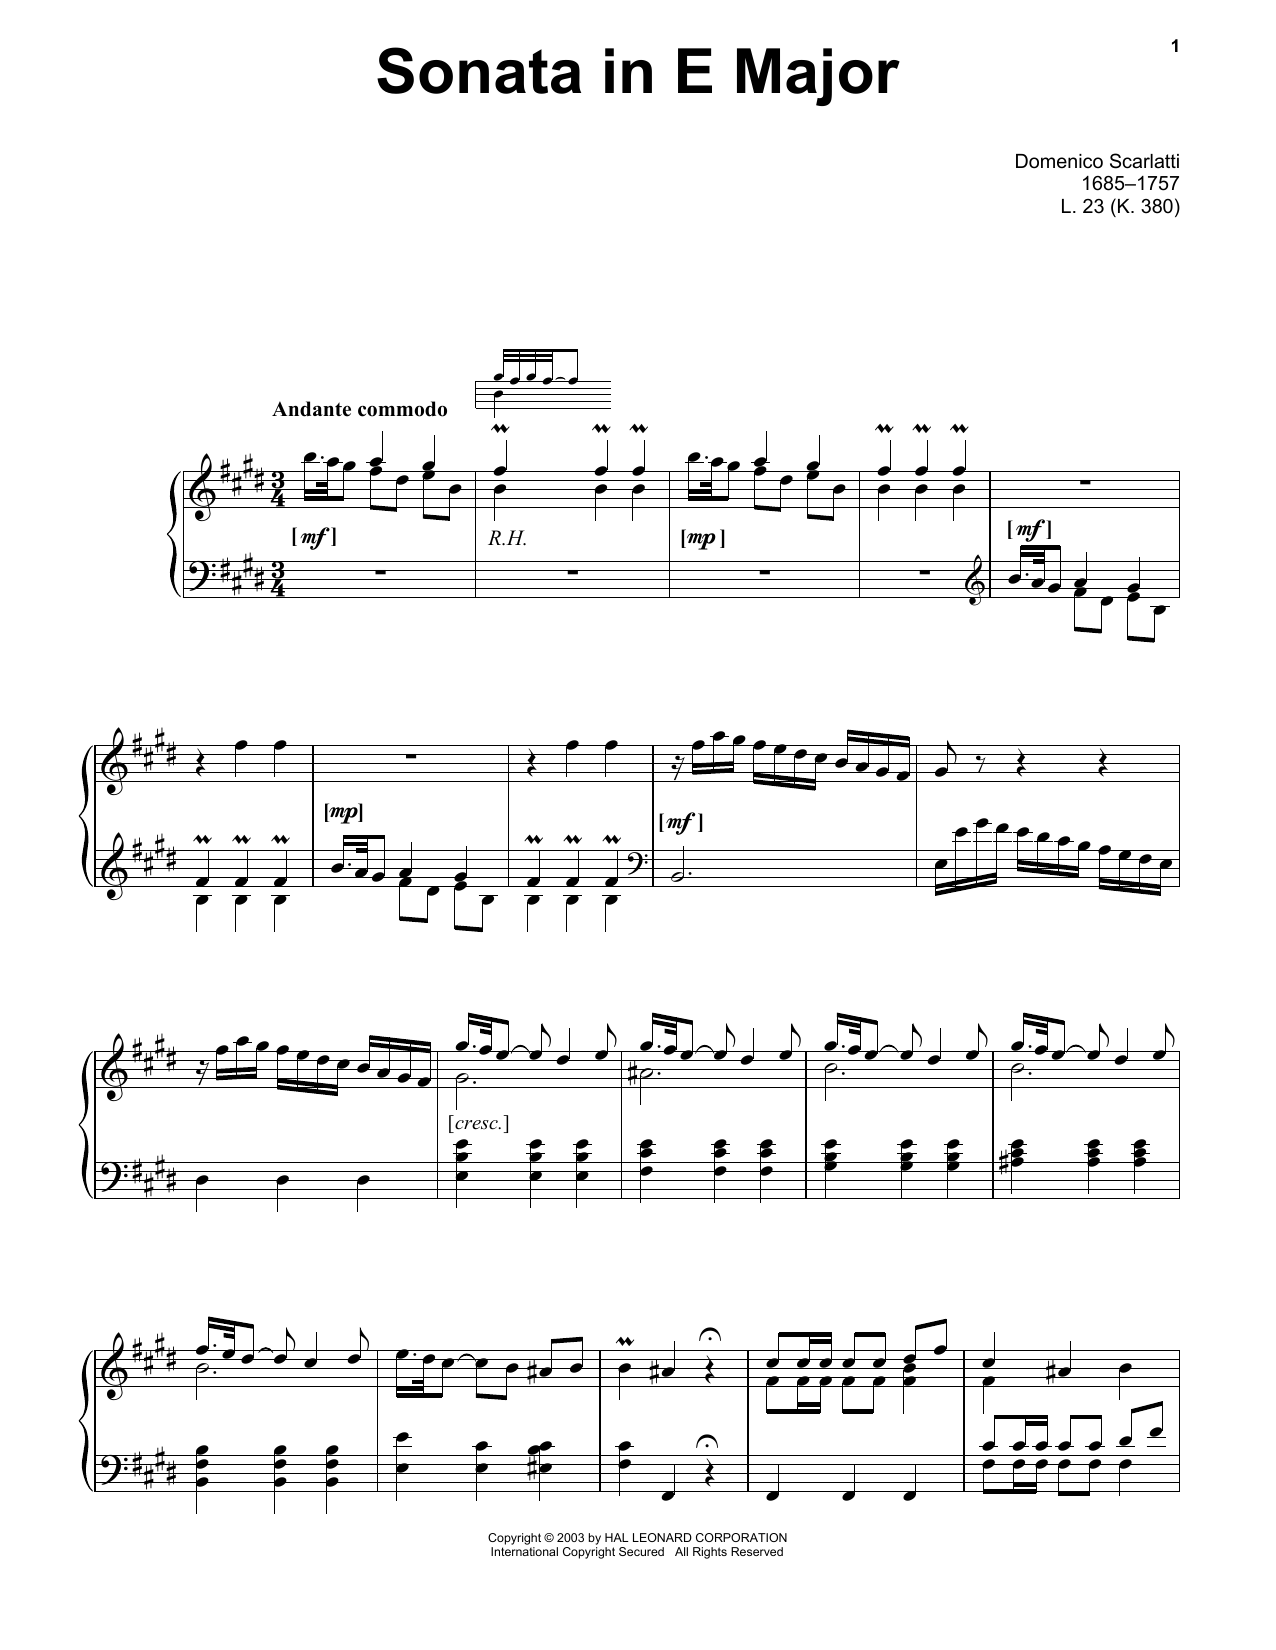 Domenico Scarlatti Sonata In E Major, L. 23 sheet music notes and chords. Download Printable PDF.